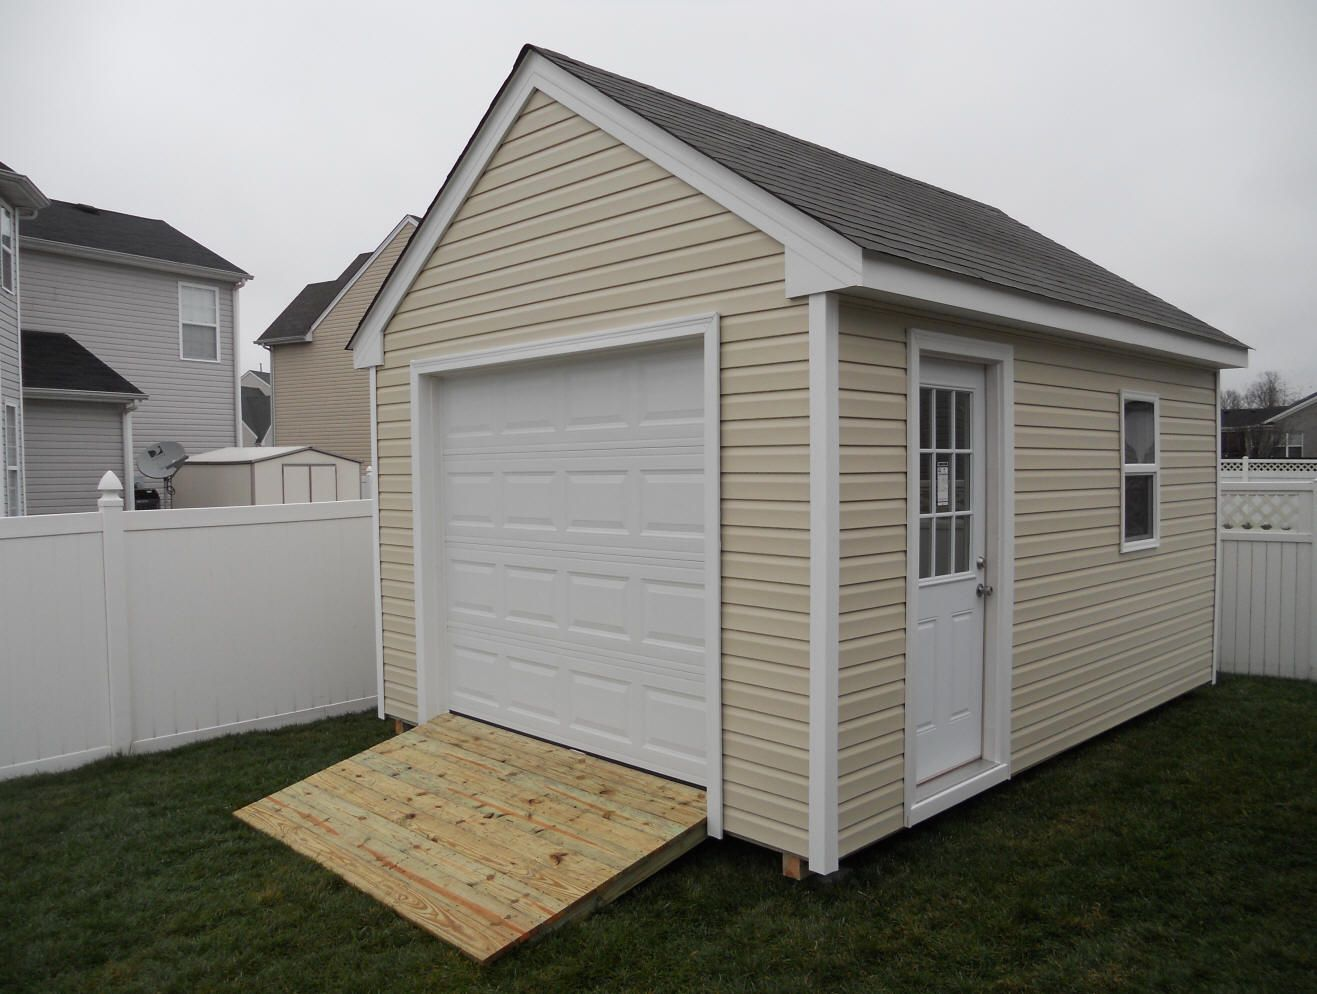 10x12 shed plans with loft google search i like the garage door idea